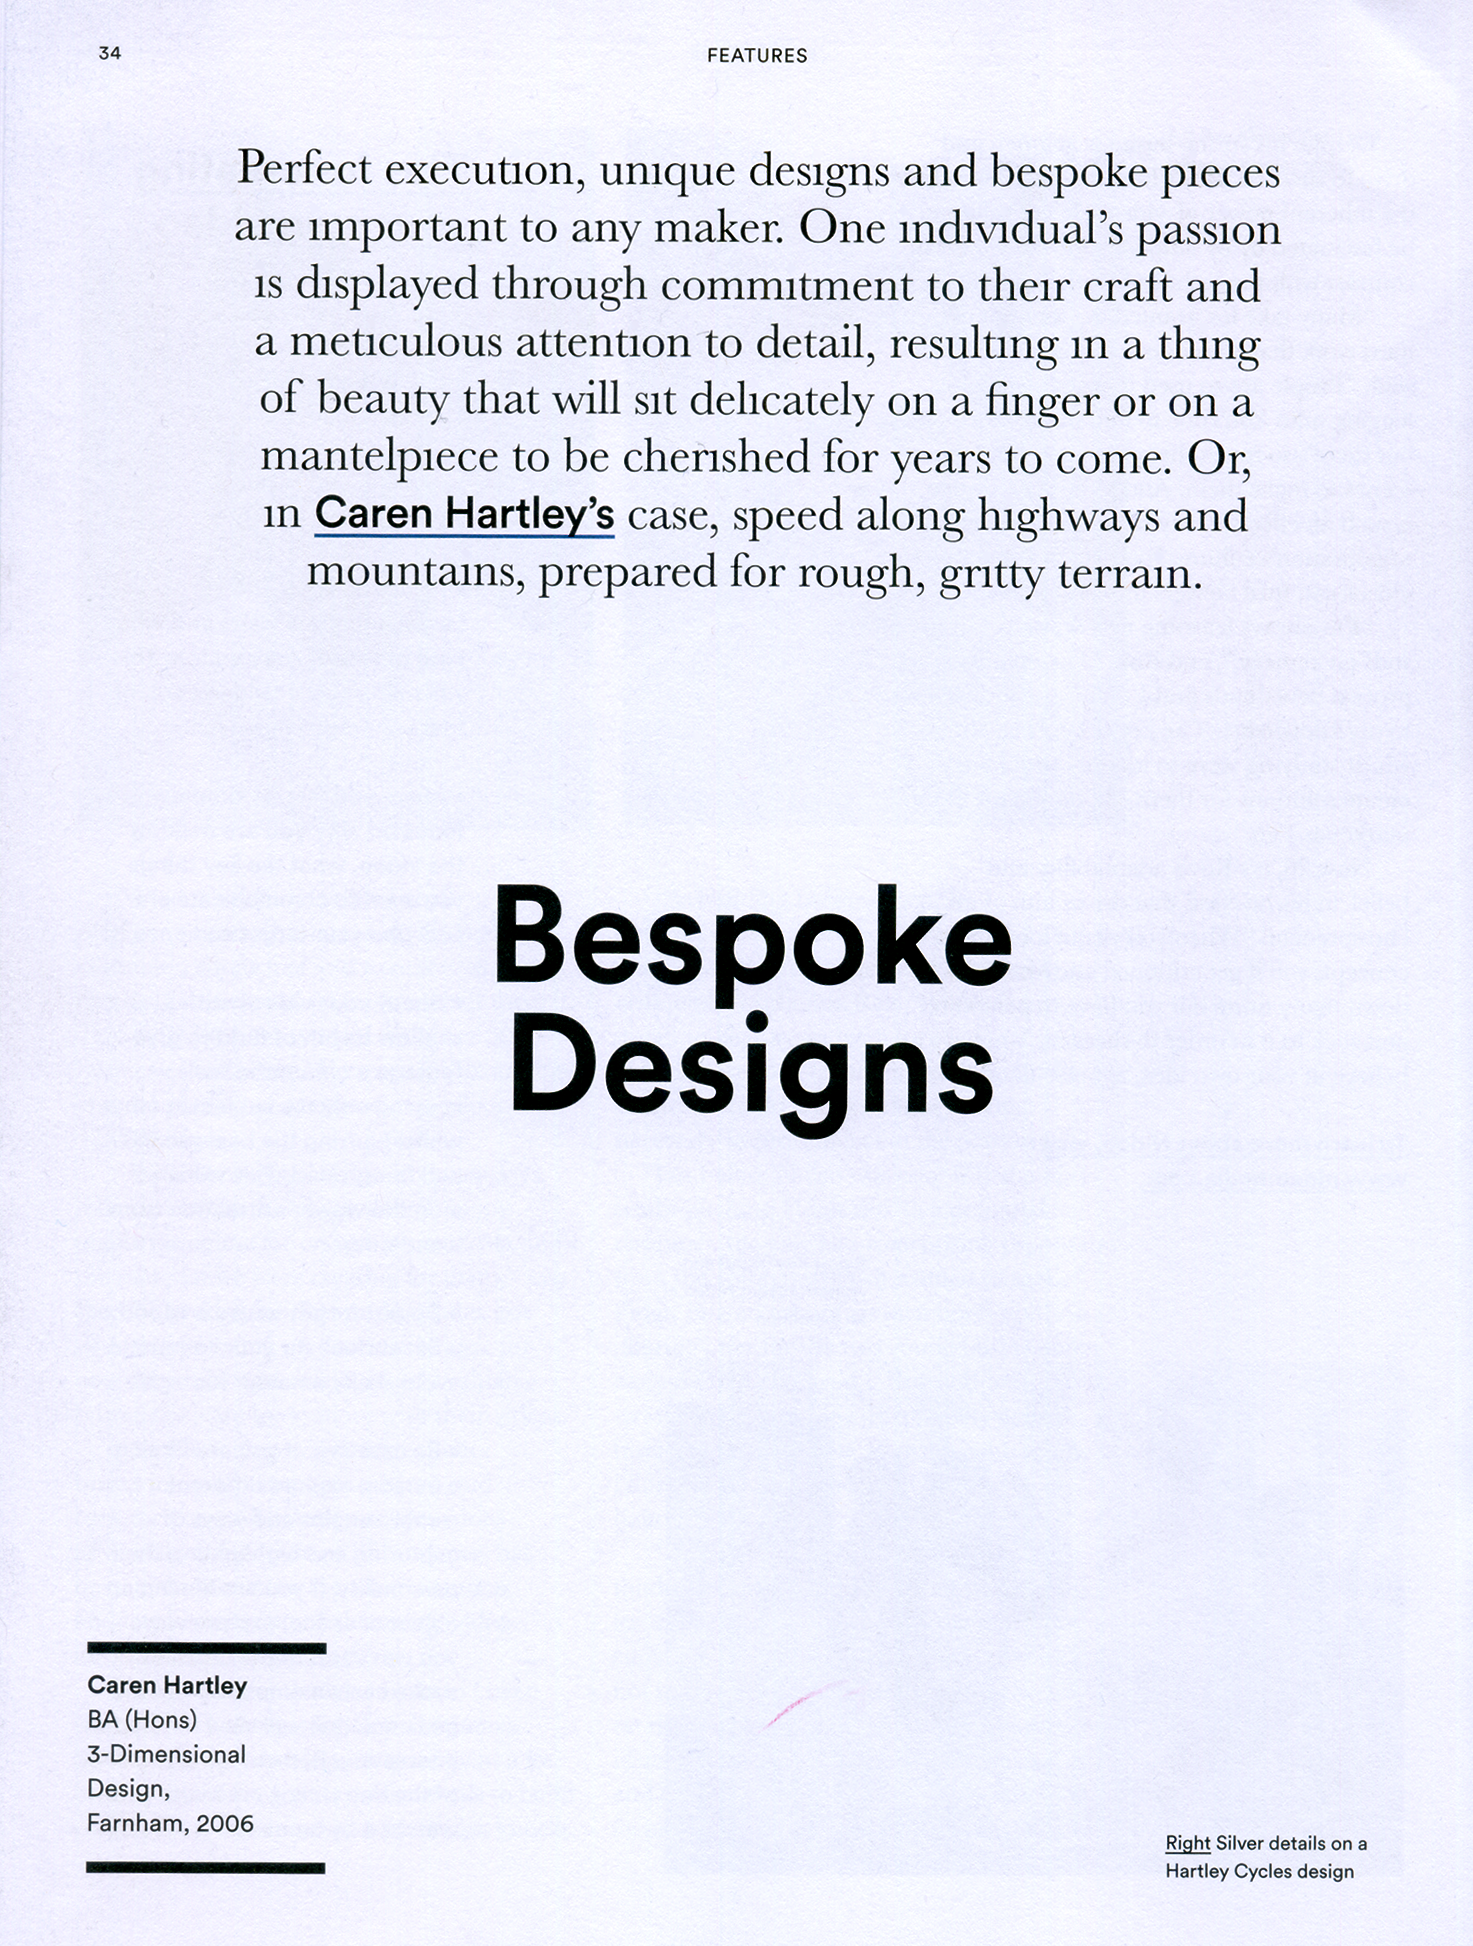 hc_creative_update_p1 1bespoke_bicycles_hartley_london.png